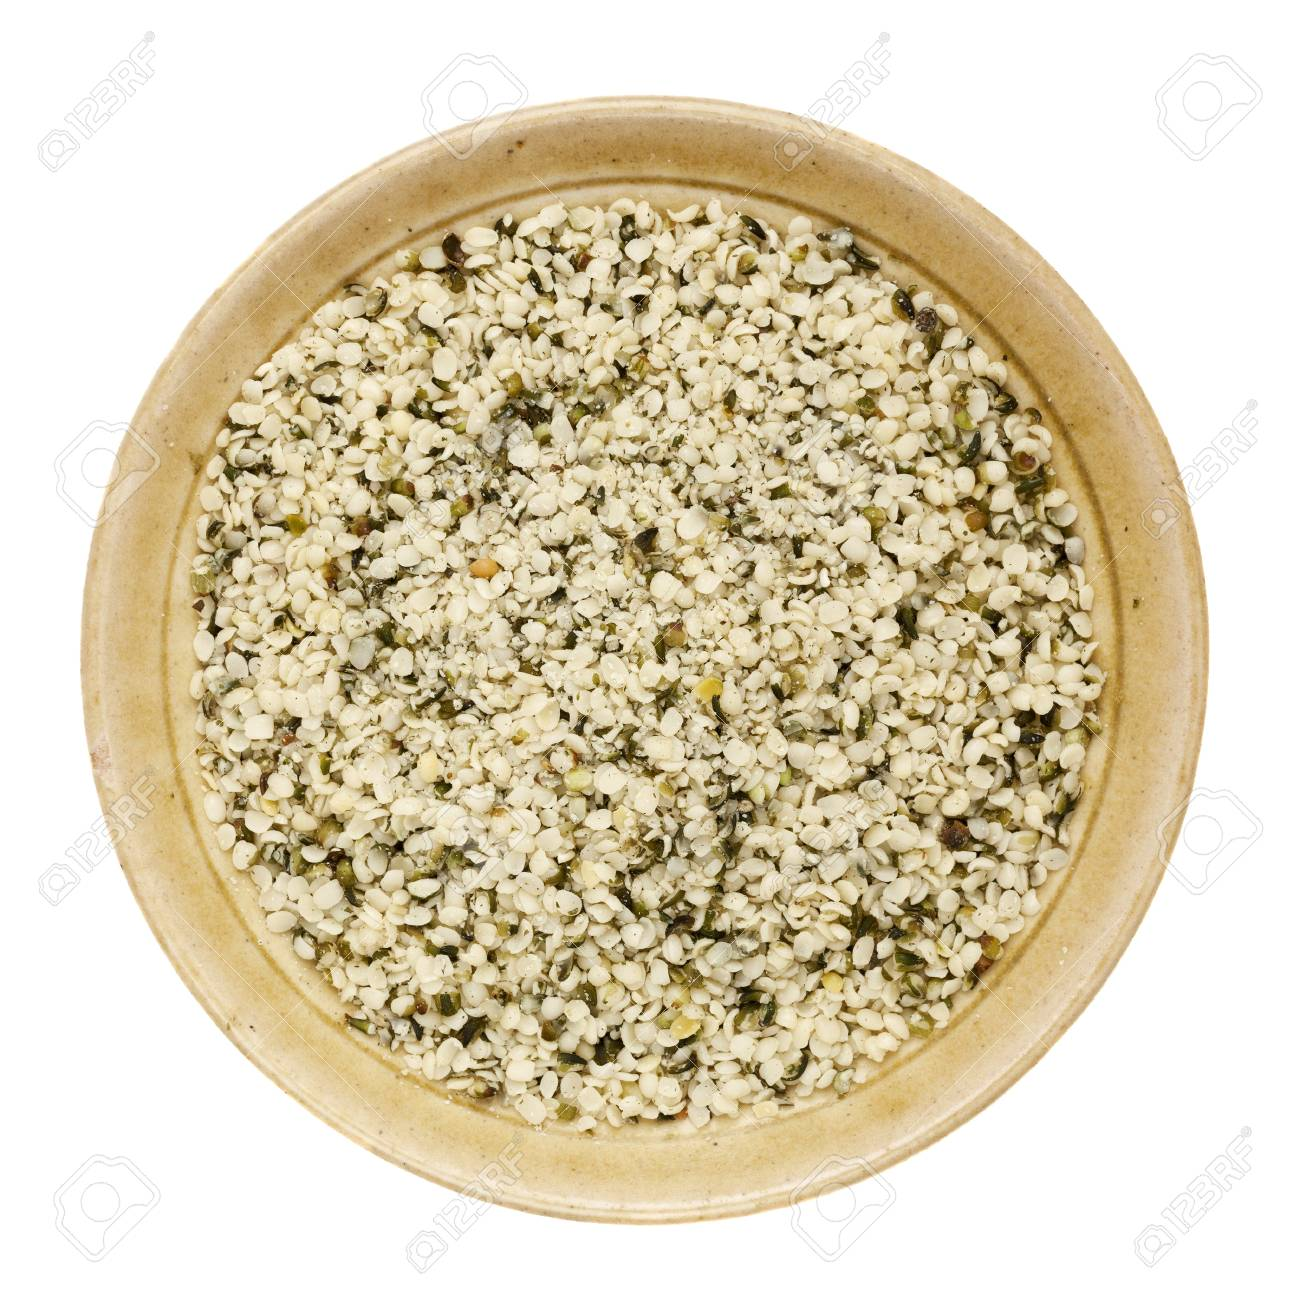 shelled hemp seeds in a round ceramic bowl isolated on white Stock Photo - 15488391